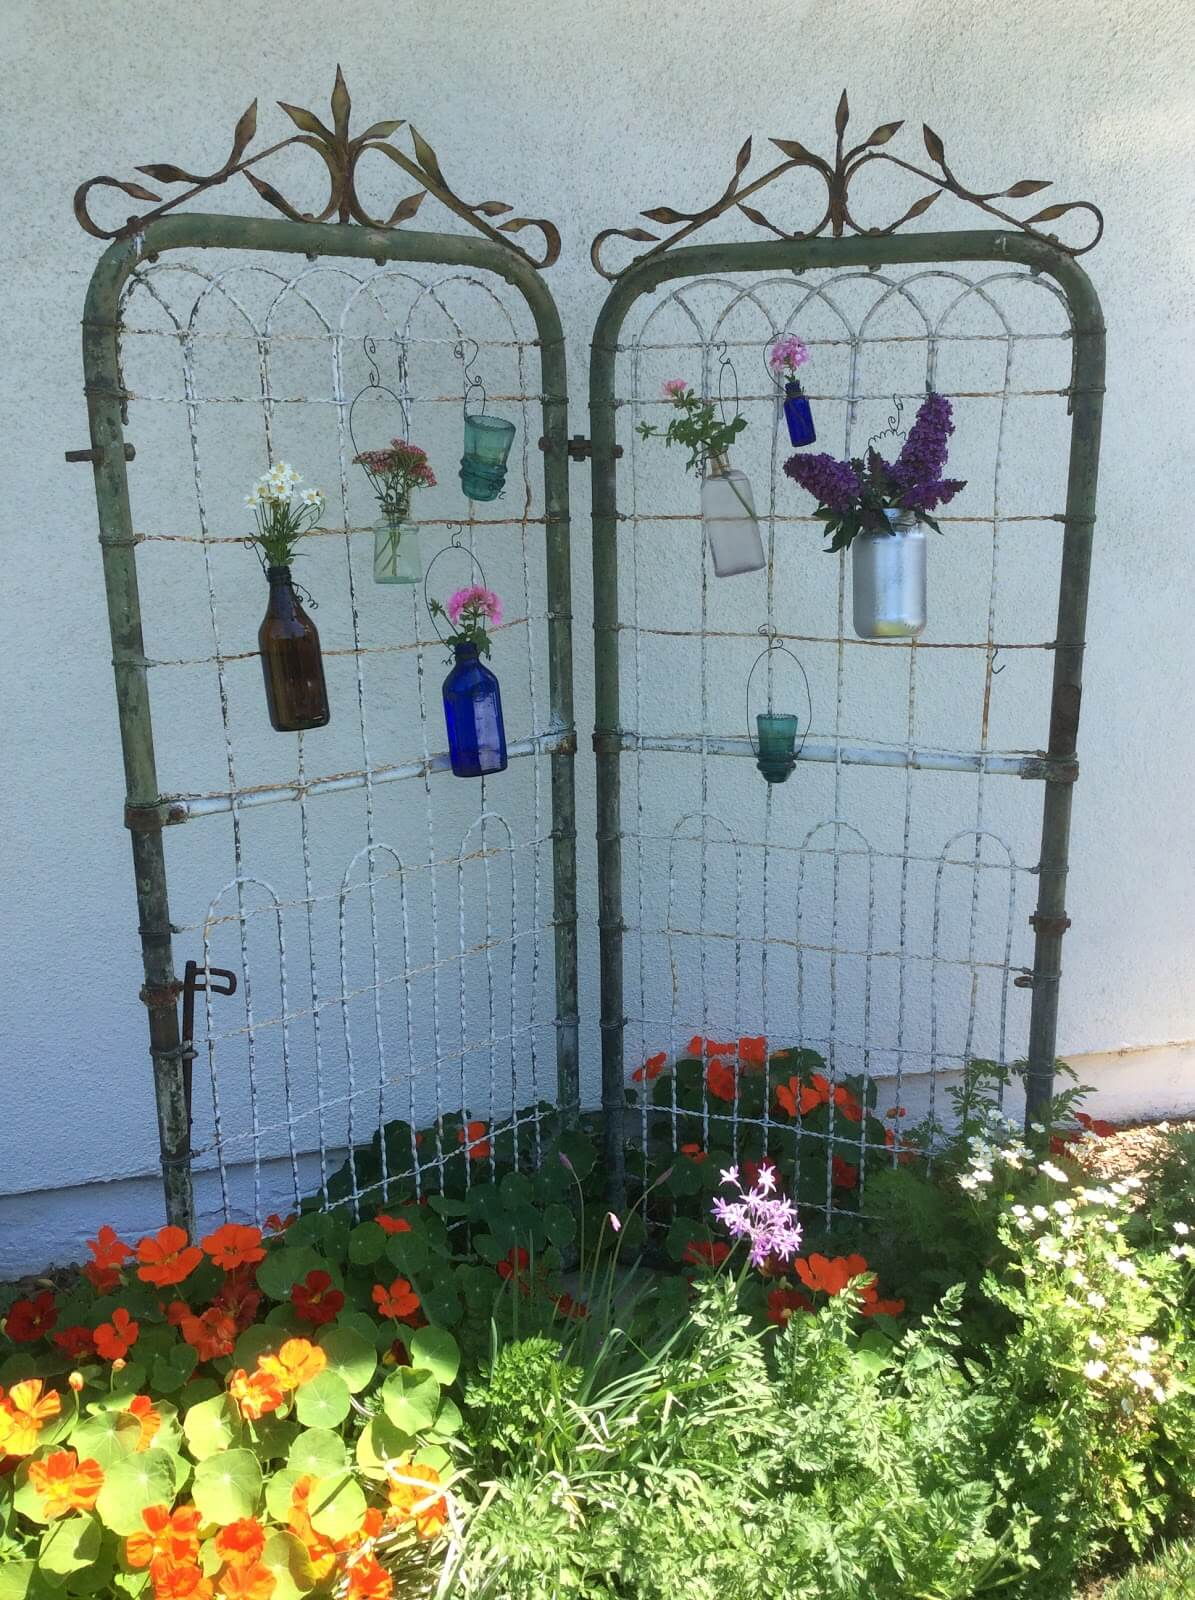 Whimsical Iron Gate with Flower Vases